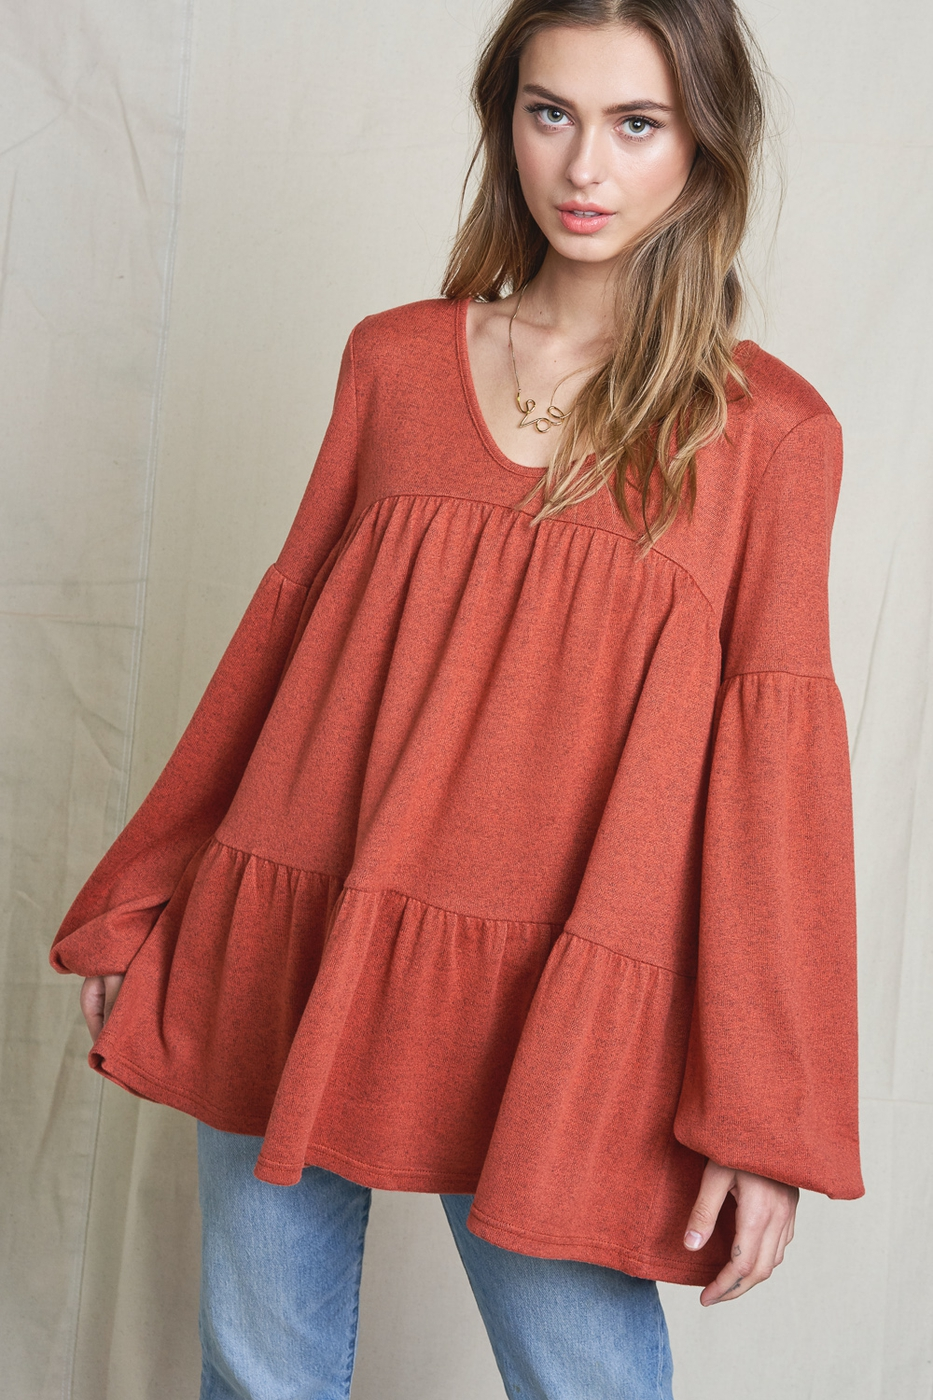 V-neck Long Sleeve Tiered Top - orangeshine.com